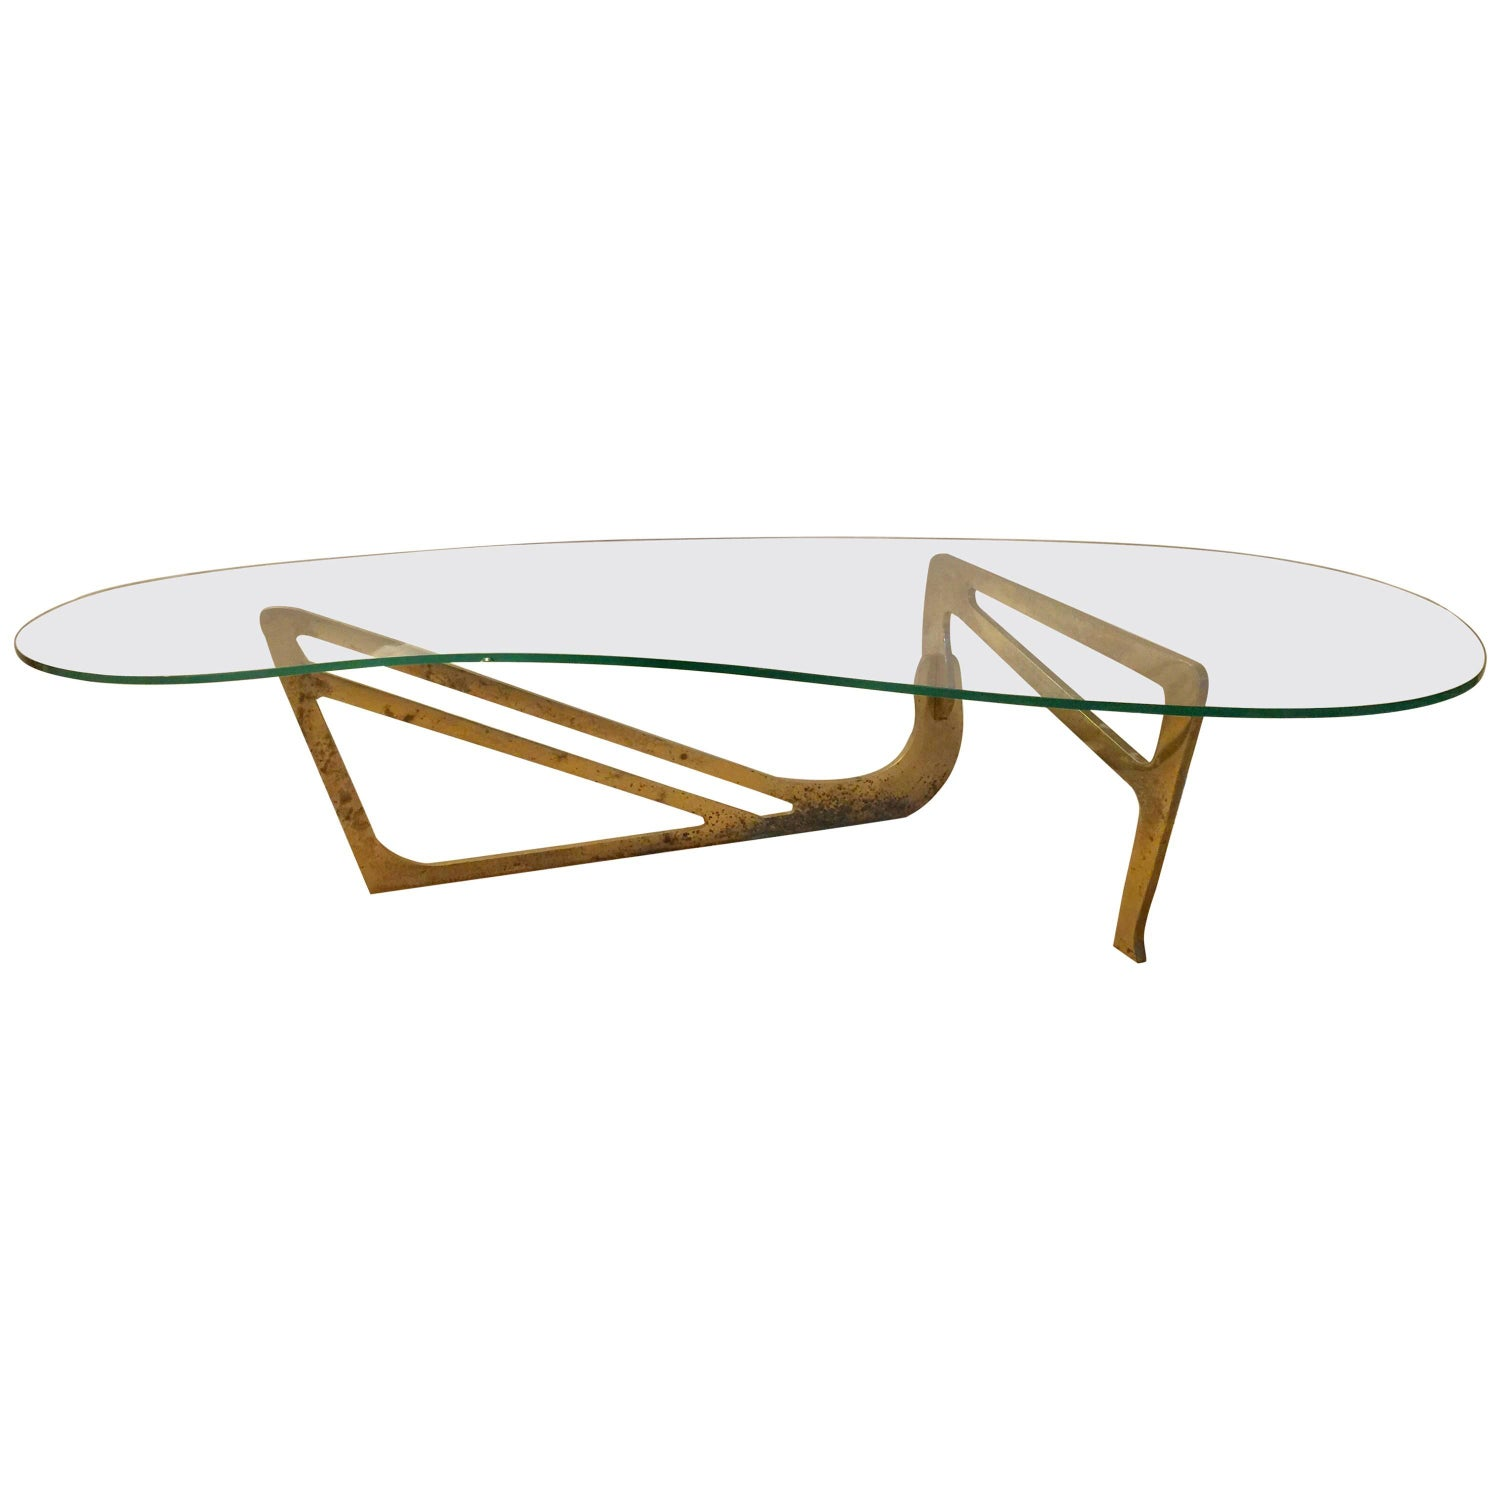 Heavy Brass Noguchi Inspired Boomerang Cocktail Table For Sale at